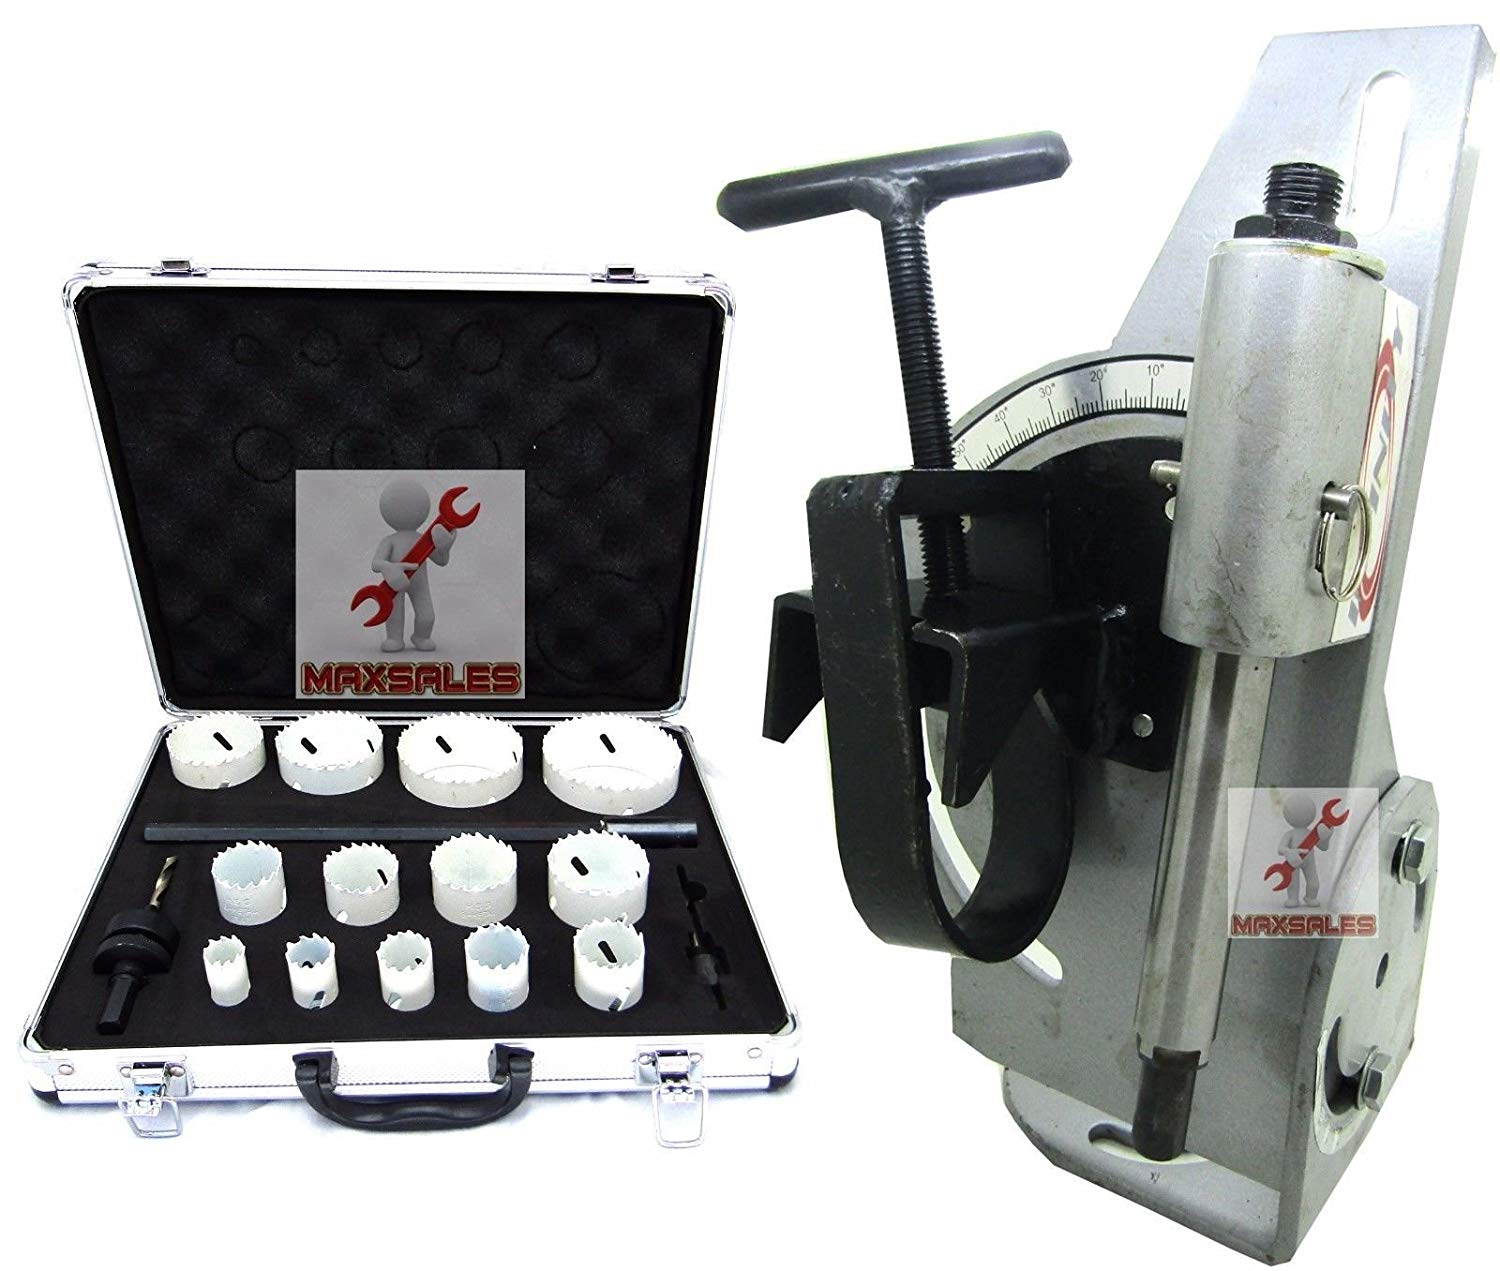 """9TRADING Tube & Pipe Notcher 60 Degree Notch Up To 2-1/8"""" Tubing & 18pcs Bi Hole Saw Kit,Free Tax, Delivered within 10 days"""